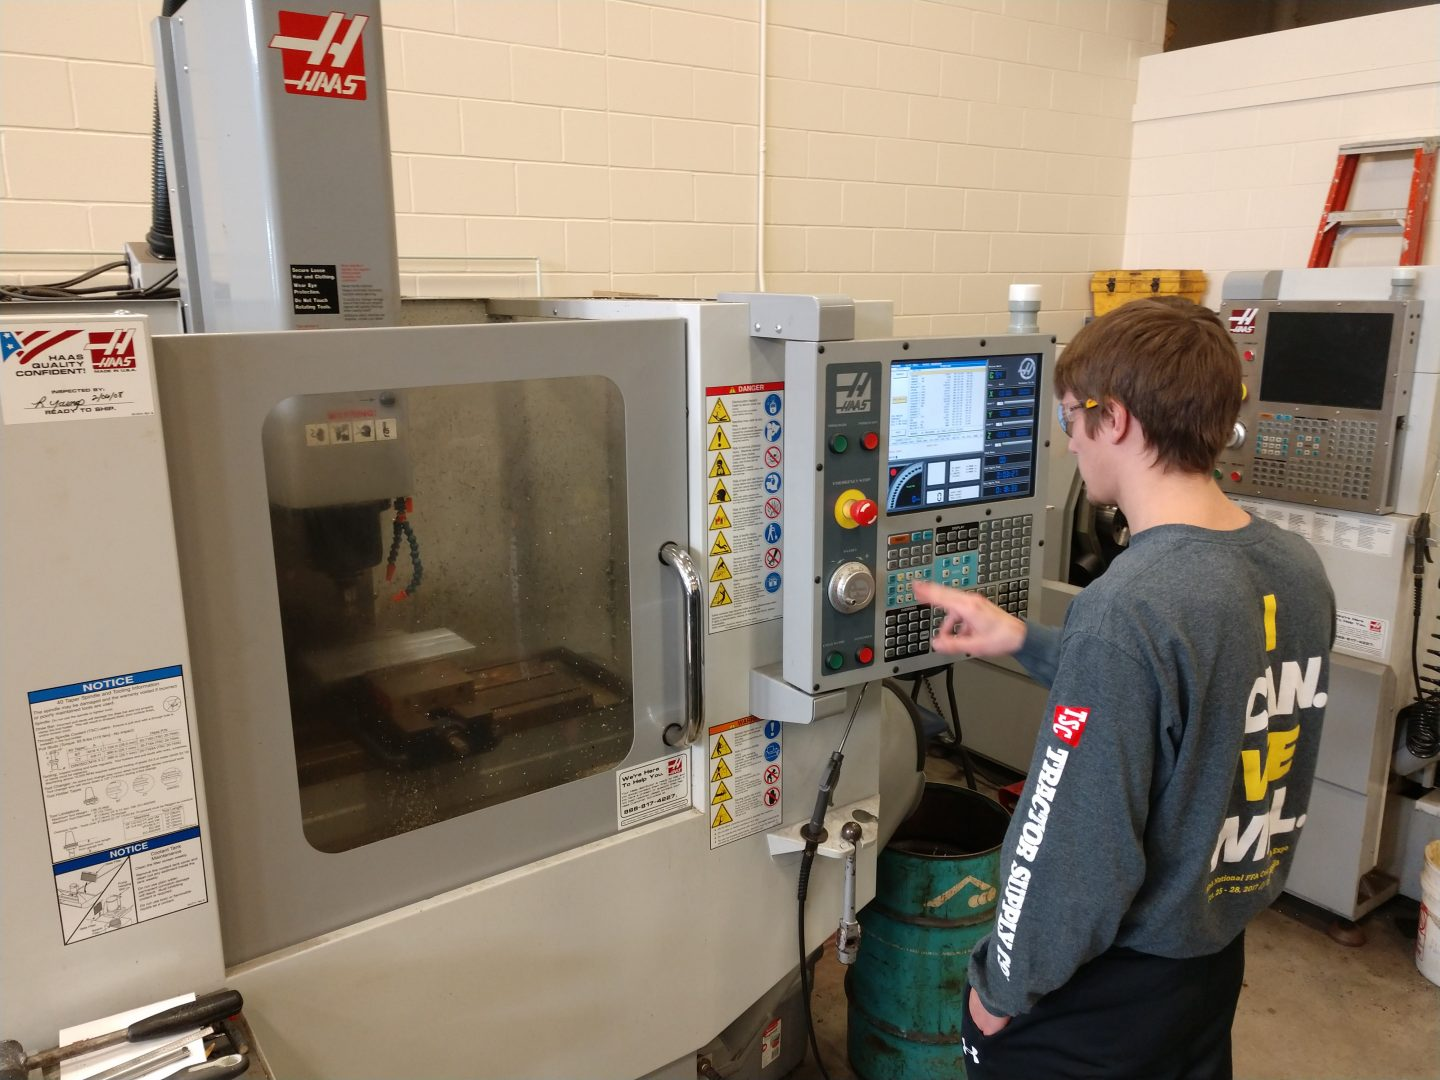 student working on machine in shop class